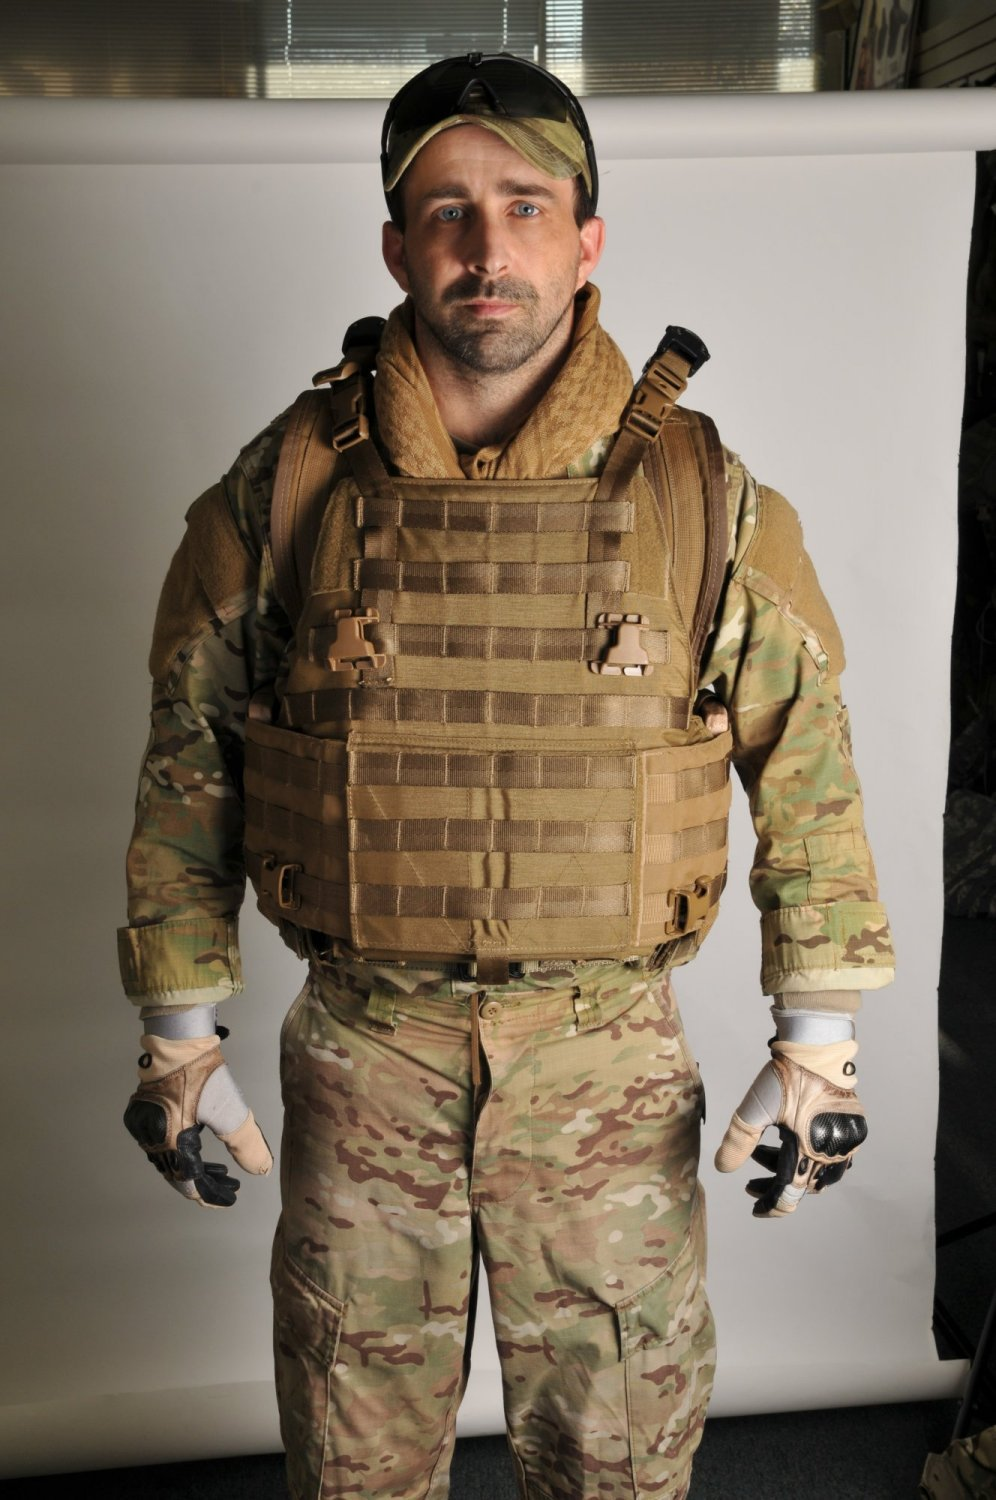 Archangel Armor Internal Frame Load Bearing System IFLBS Version 5 Tactical Armor Plate Carrier System Paul Carter Photo 1 <!  :en  >Archangel Armor Internal Frame Load Bearing System (IFLBS) Version 5 Tactical Armor Plate Carrier/Tactical Vest System: Lighten your load when youre in combat mode!<!  :  >